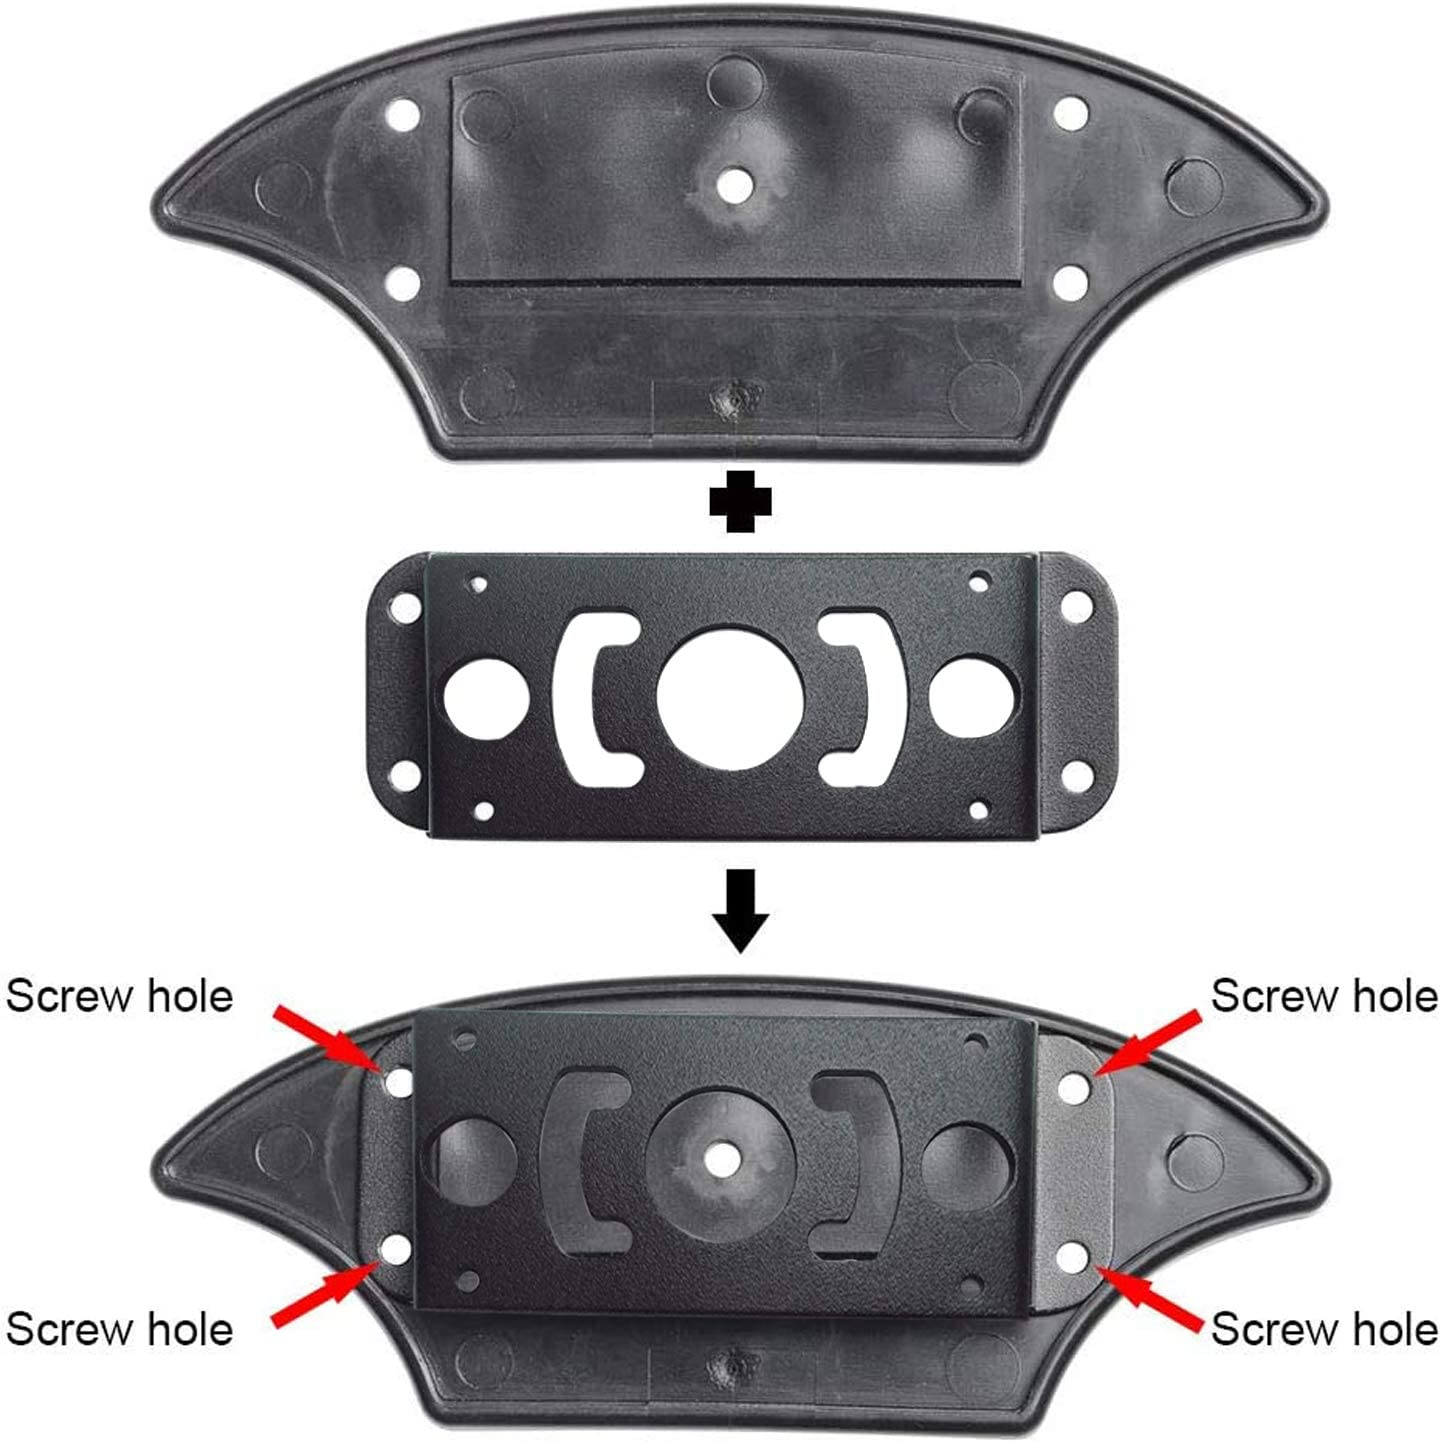 VECLESUS Backup Camera Bracket Adapter Compatible with Furrion Pre-Wired RVs